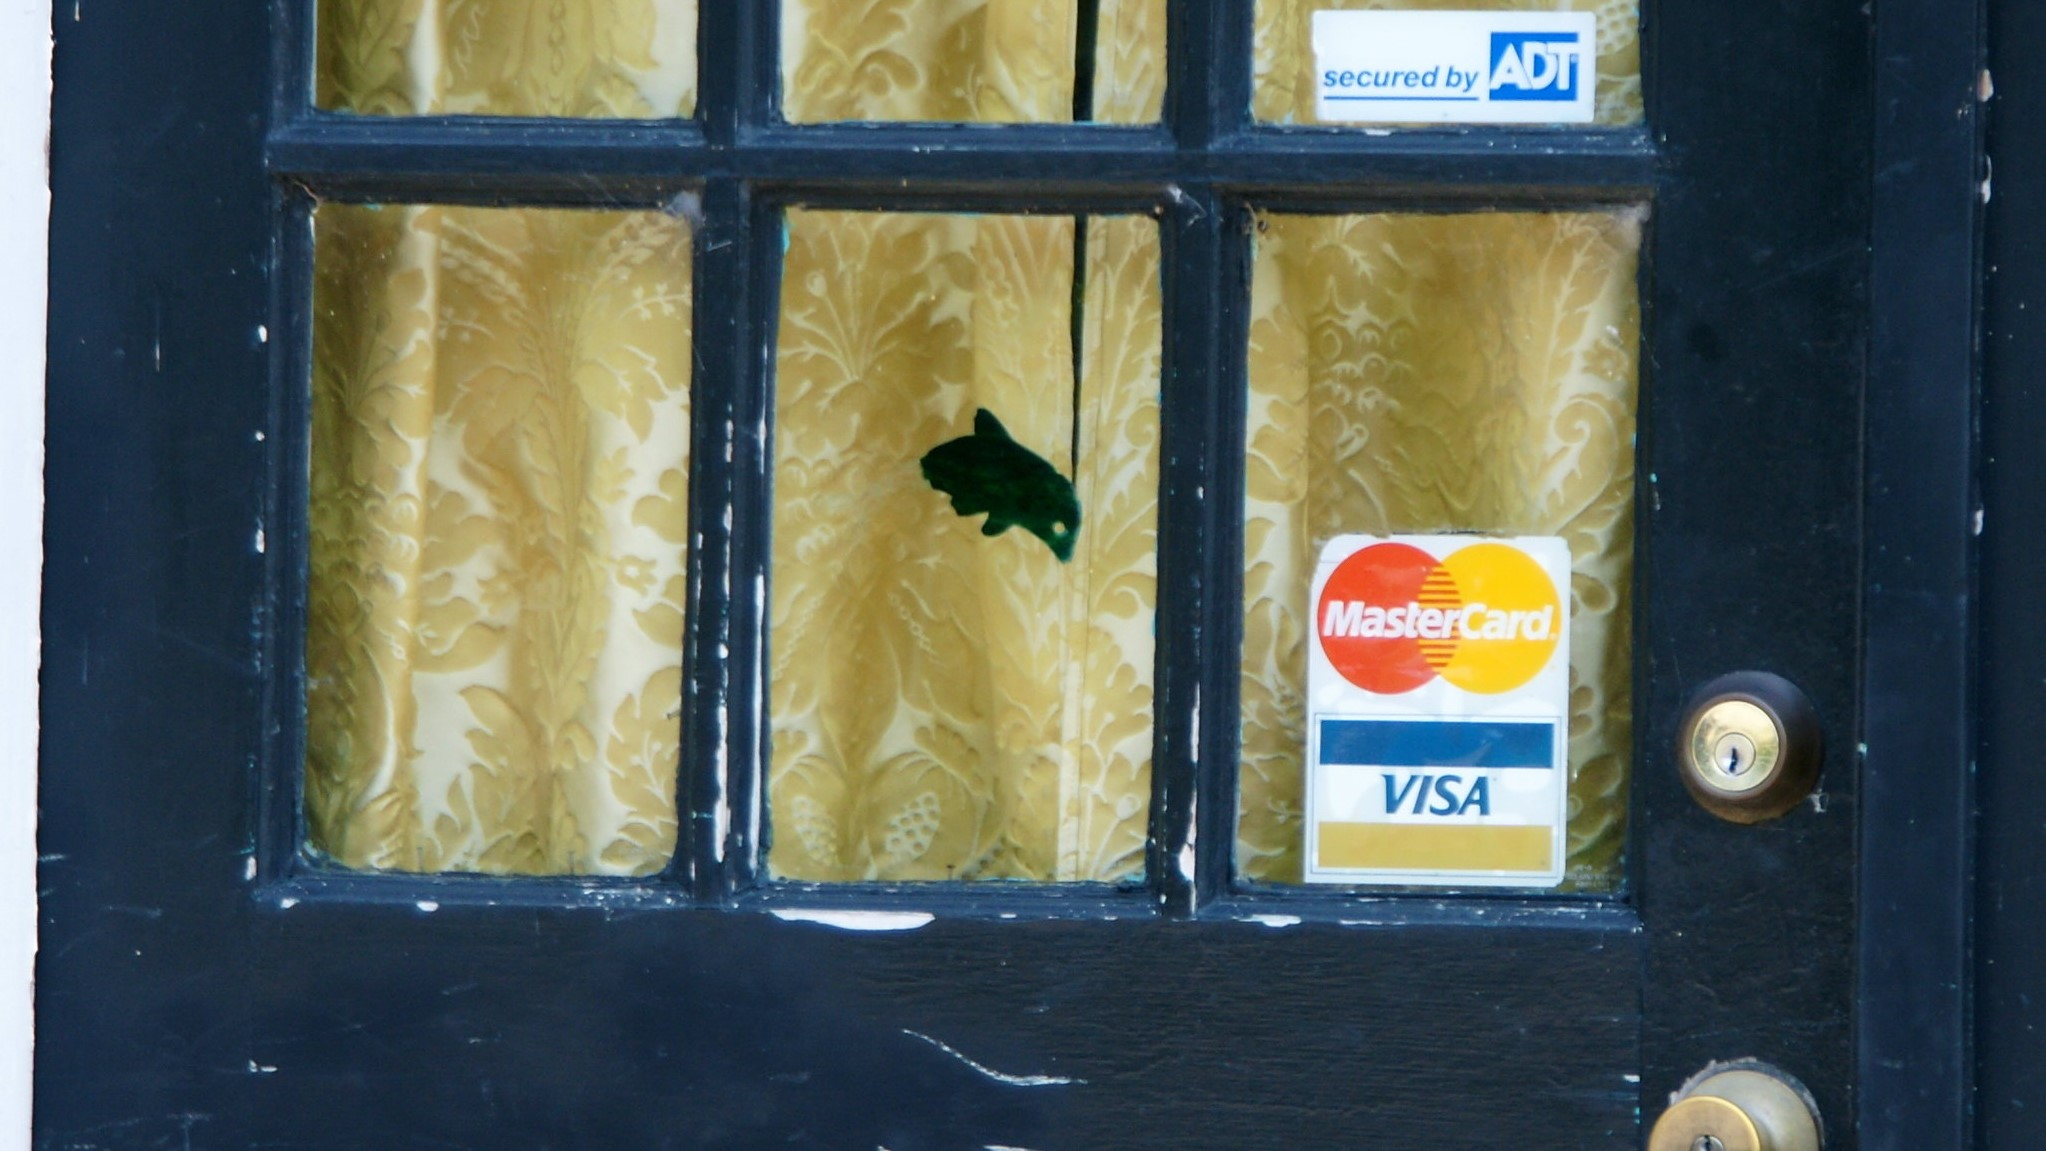 A merchant's closed door, displaying the Visa and Mastercard logos.